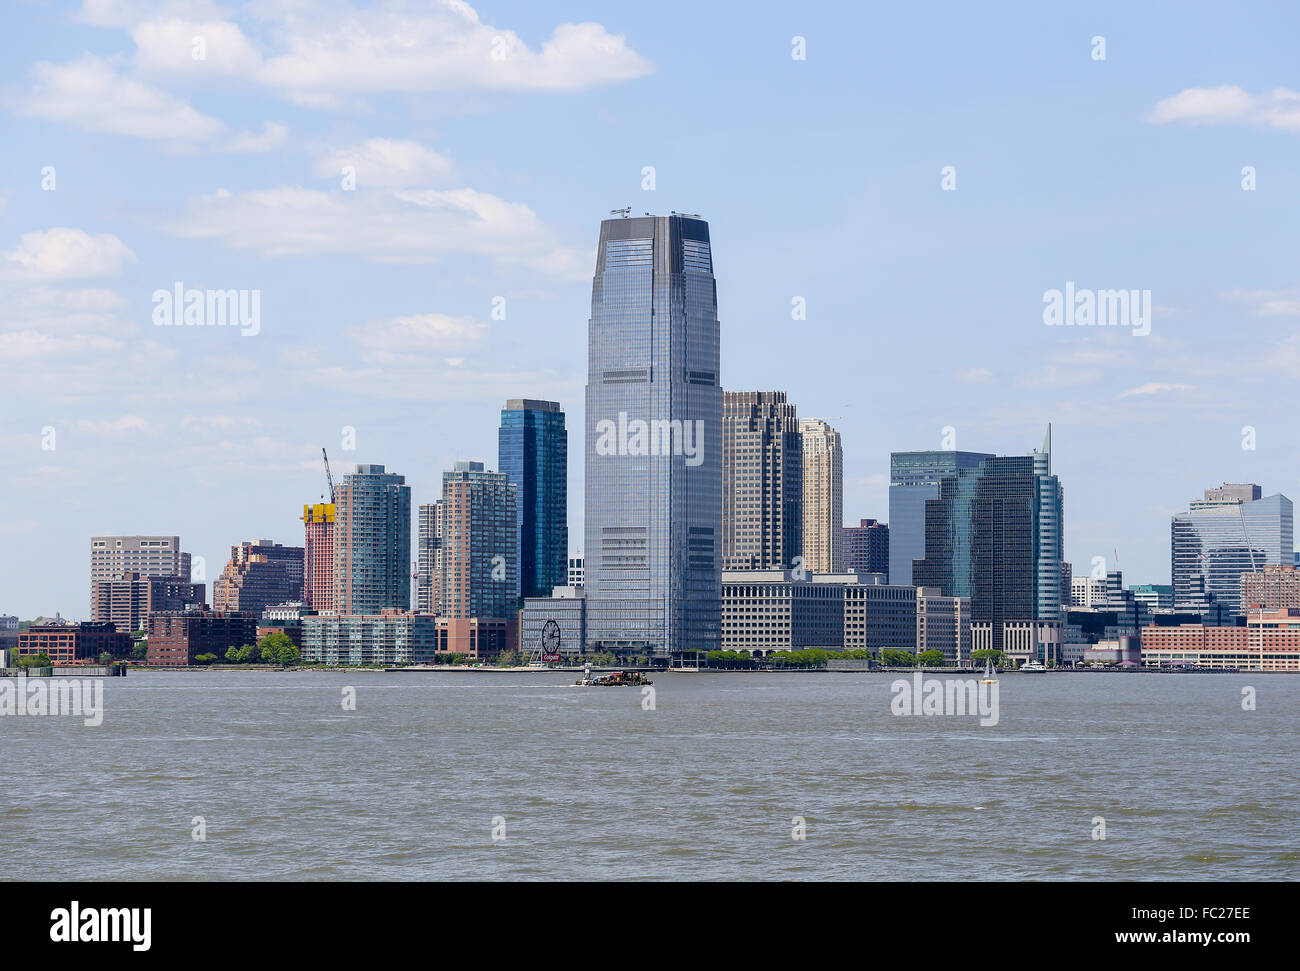 Image result for new jersey waterfront